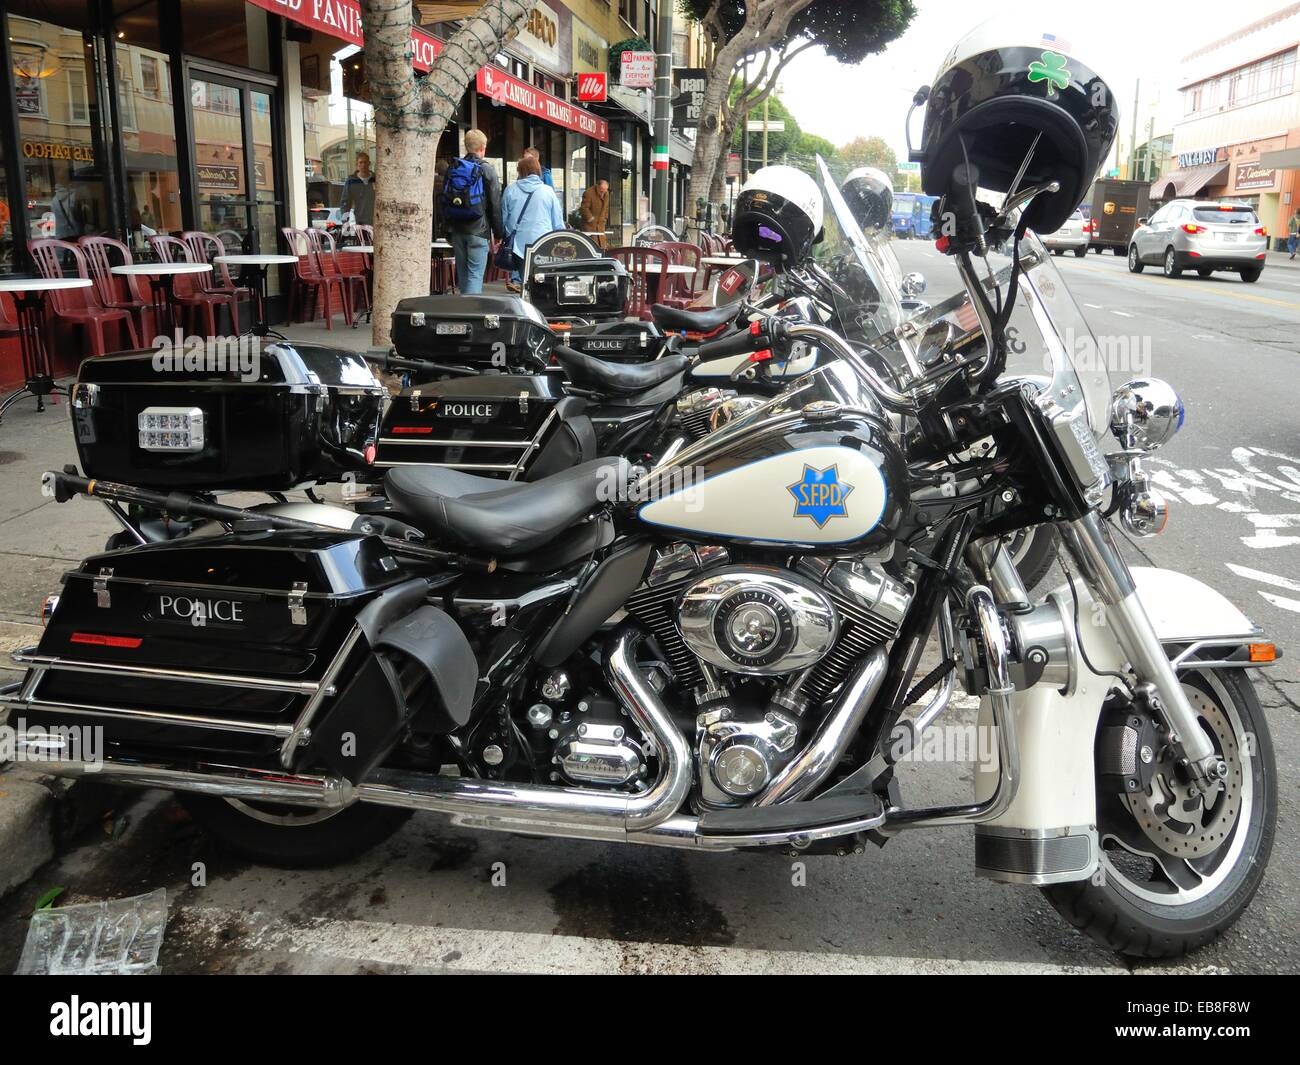 san francisco police harley davidson motorcycles parked on